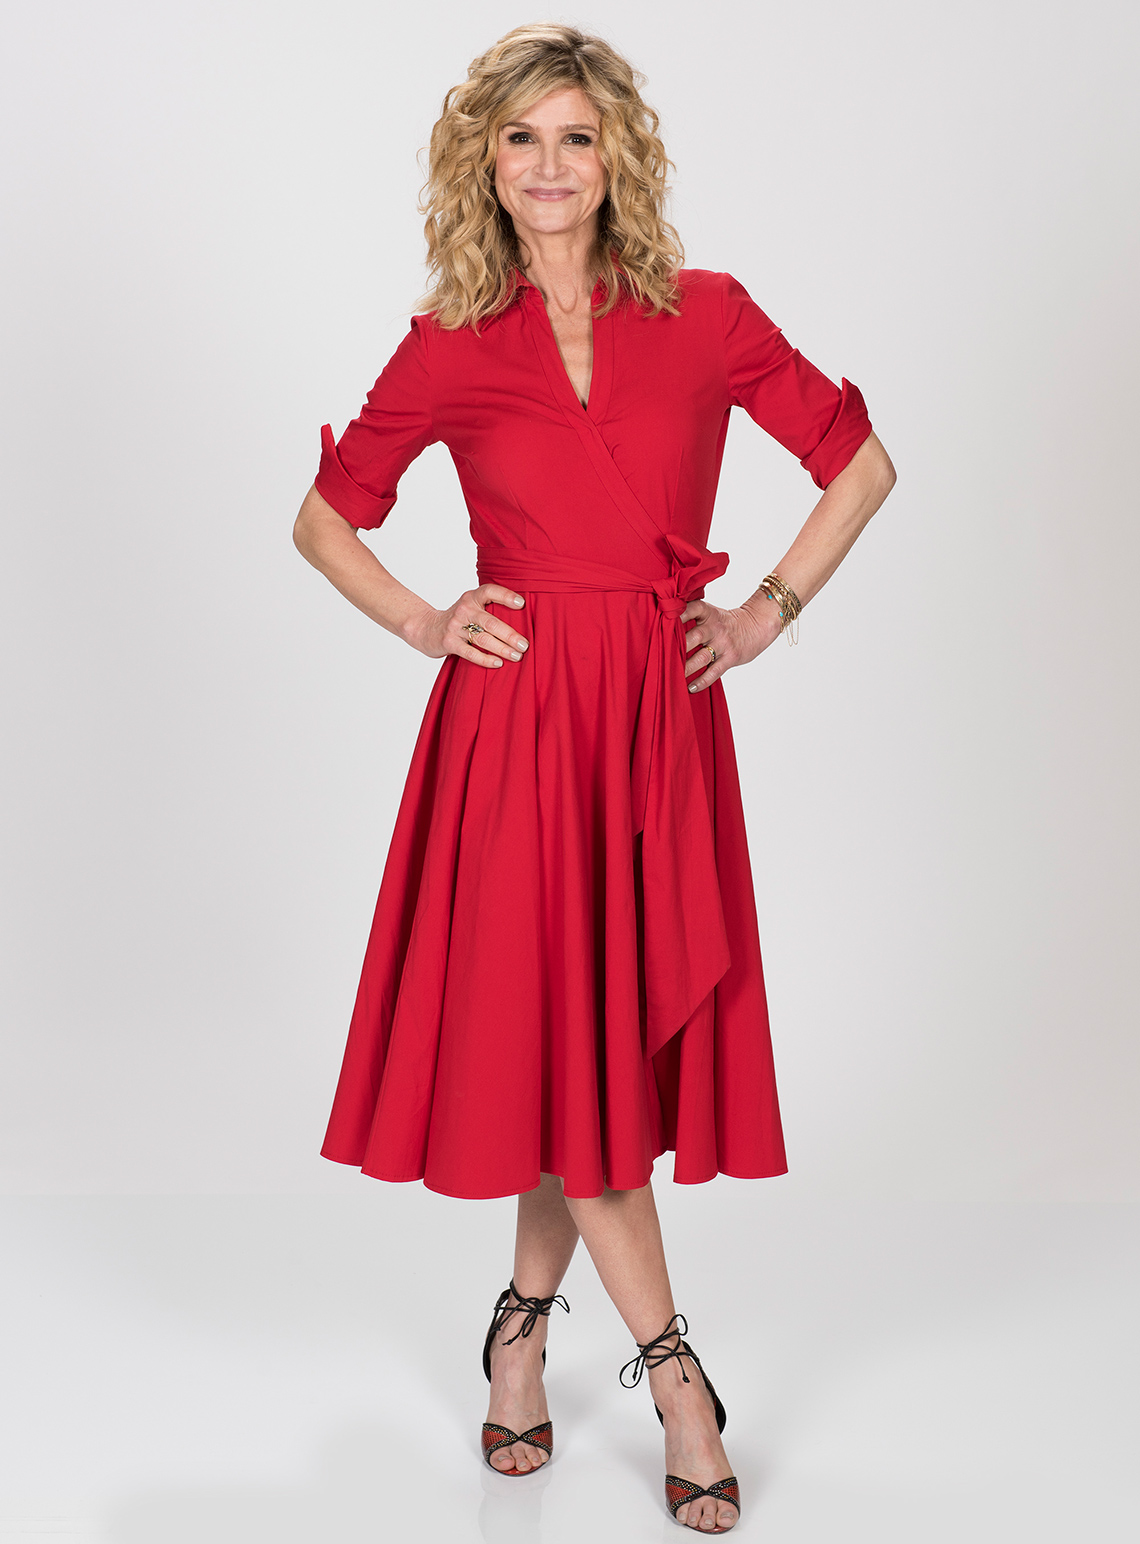 item 4 of Gallery image - Kyra Sedgwick in a red dress